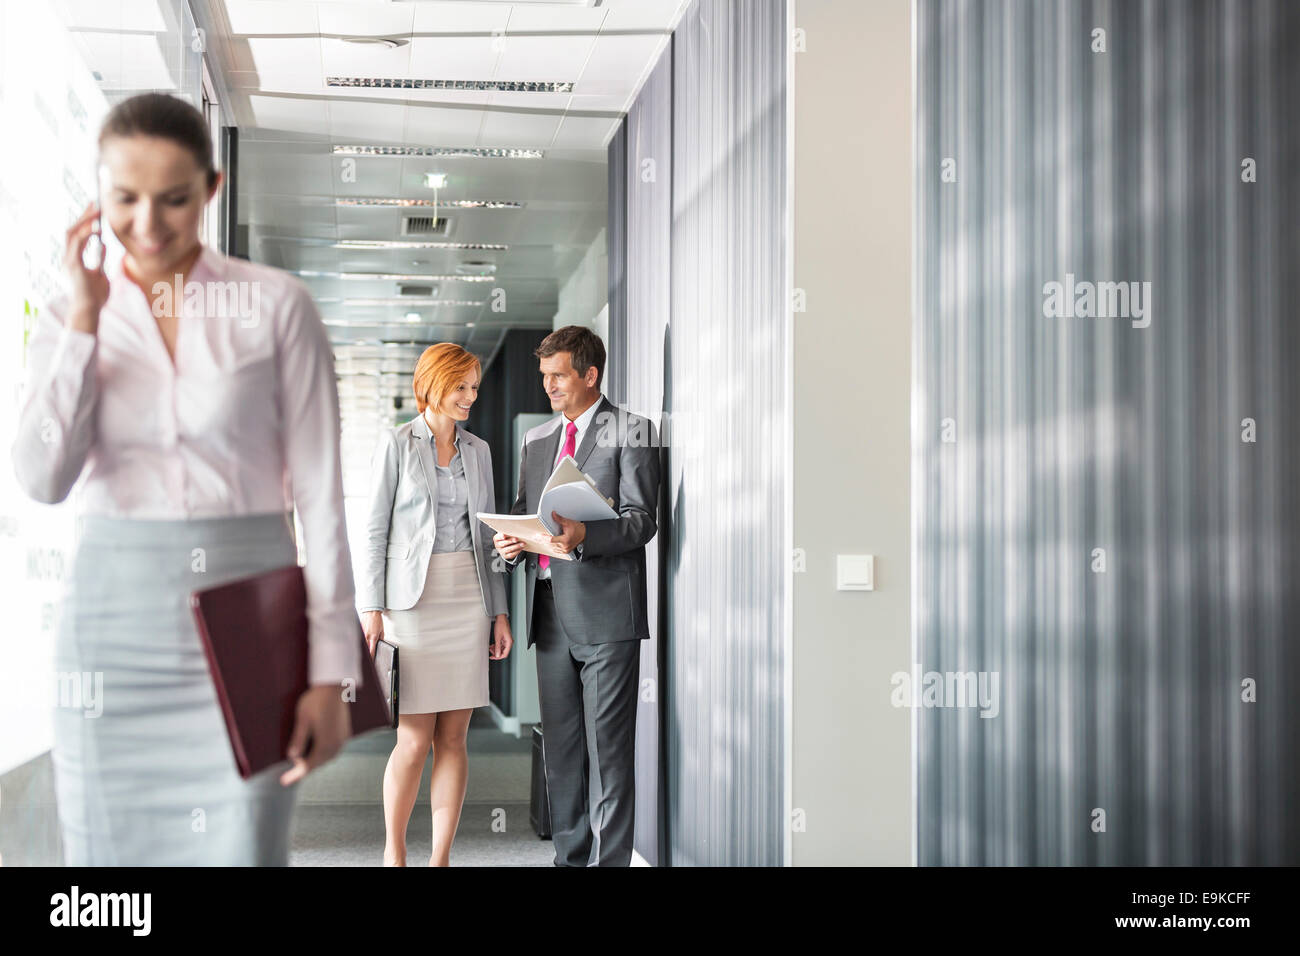 Business people discussing in corridor with colleague using cell phone in foreground - Stock Image